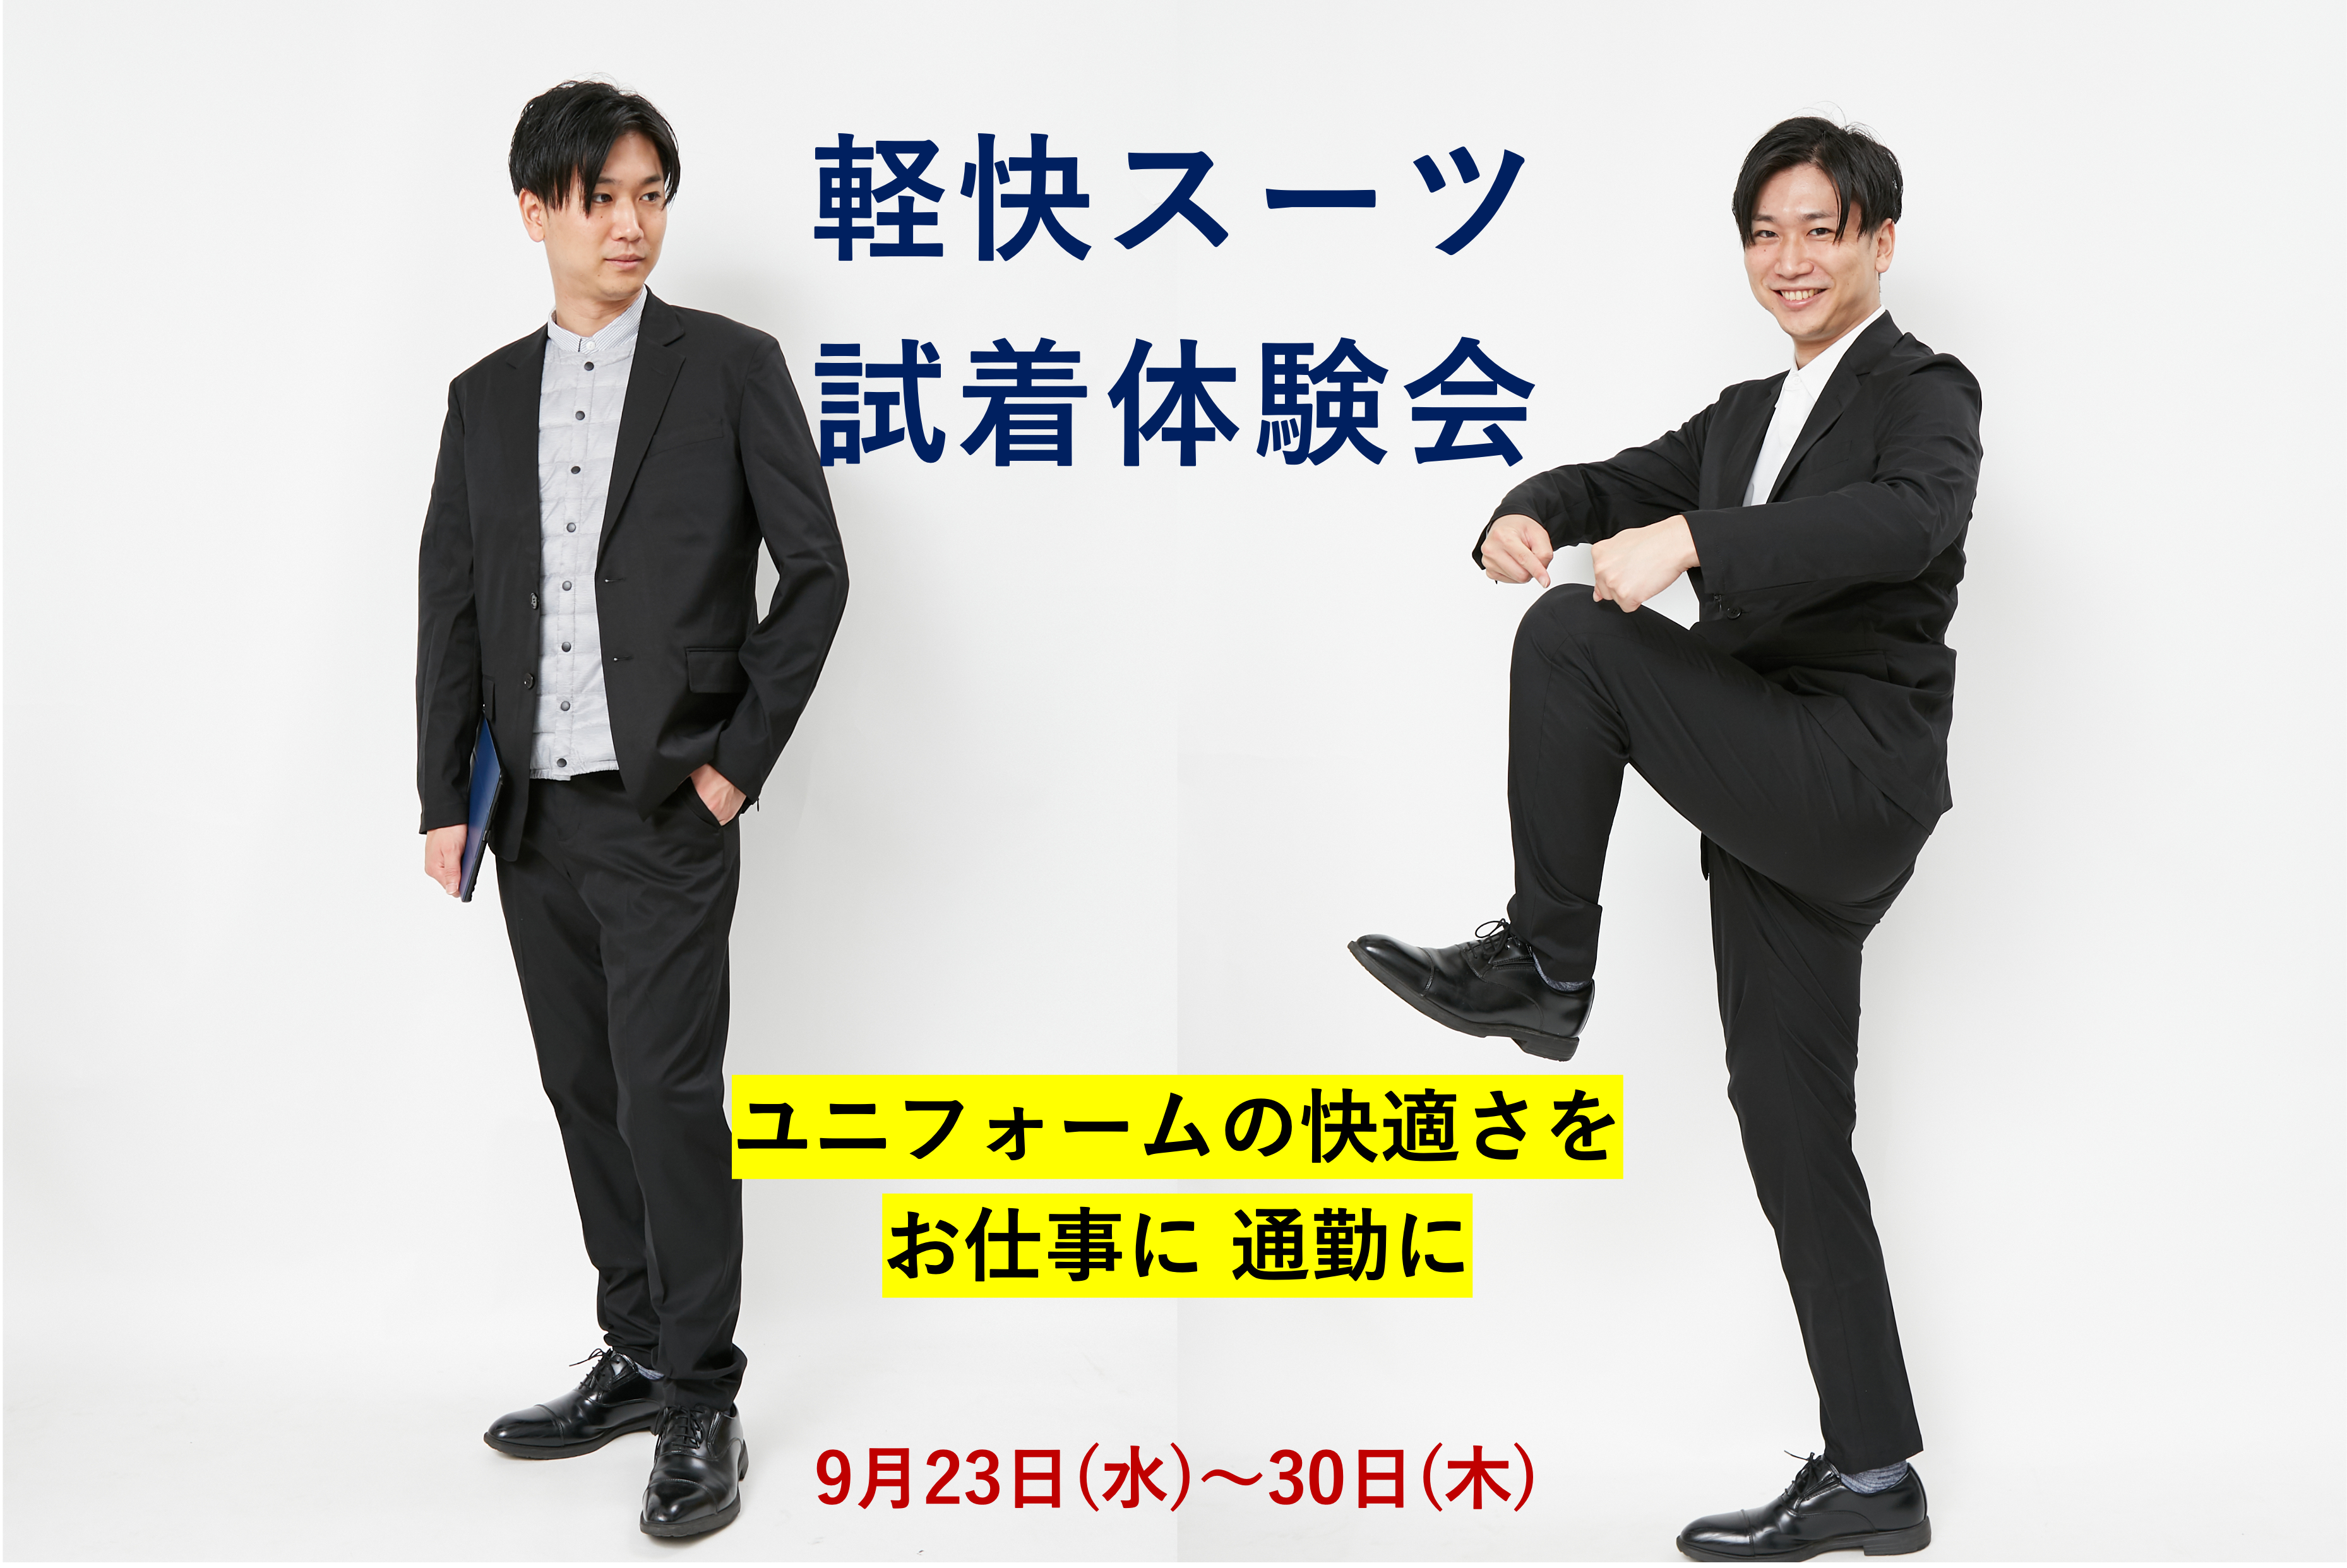 You are currently viewing 軽快スーツ 試着体験会 特別価格&お買い上げプレゼント! @諫早インターチェンジ店★